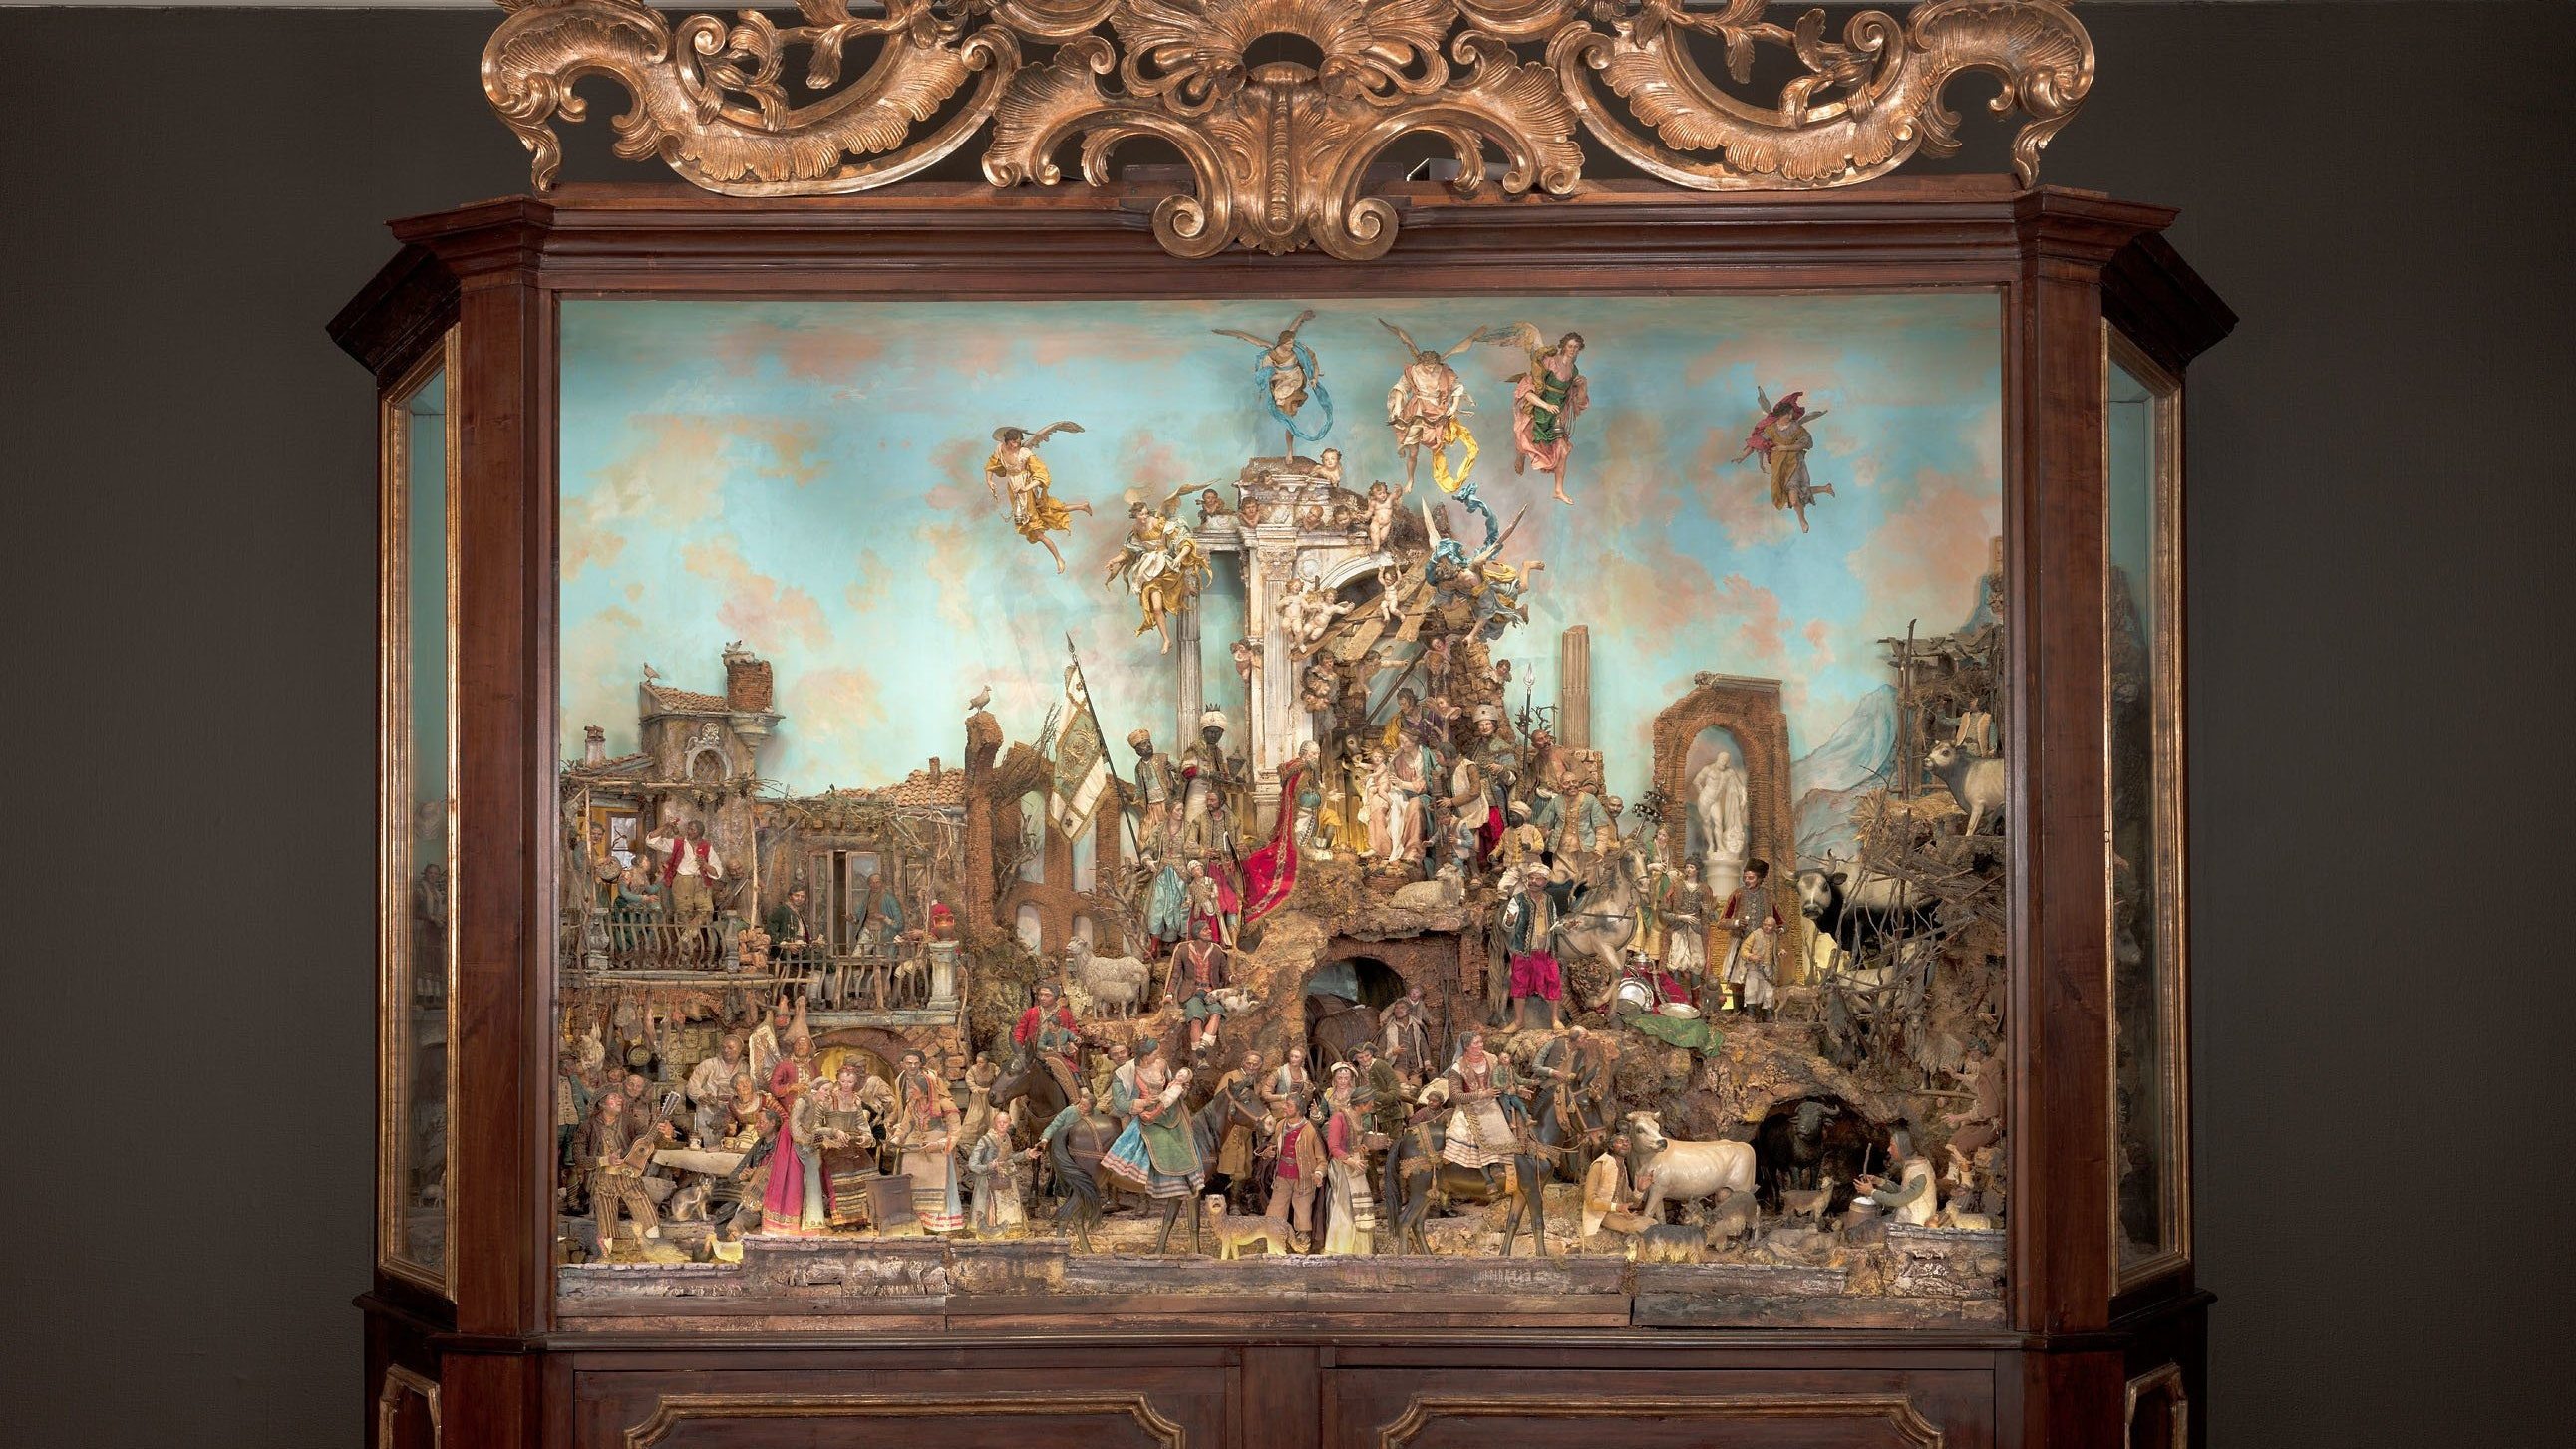 A photo of a large Neapolitan Creche made up of small, elaborate figures in a dark wooden ornamented case.